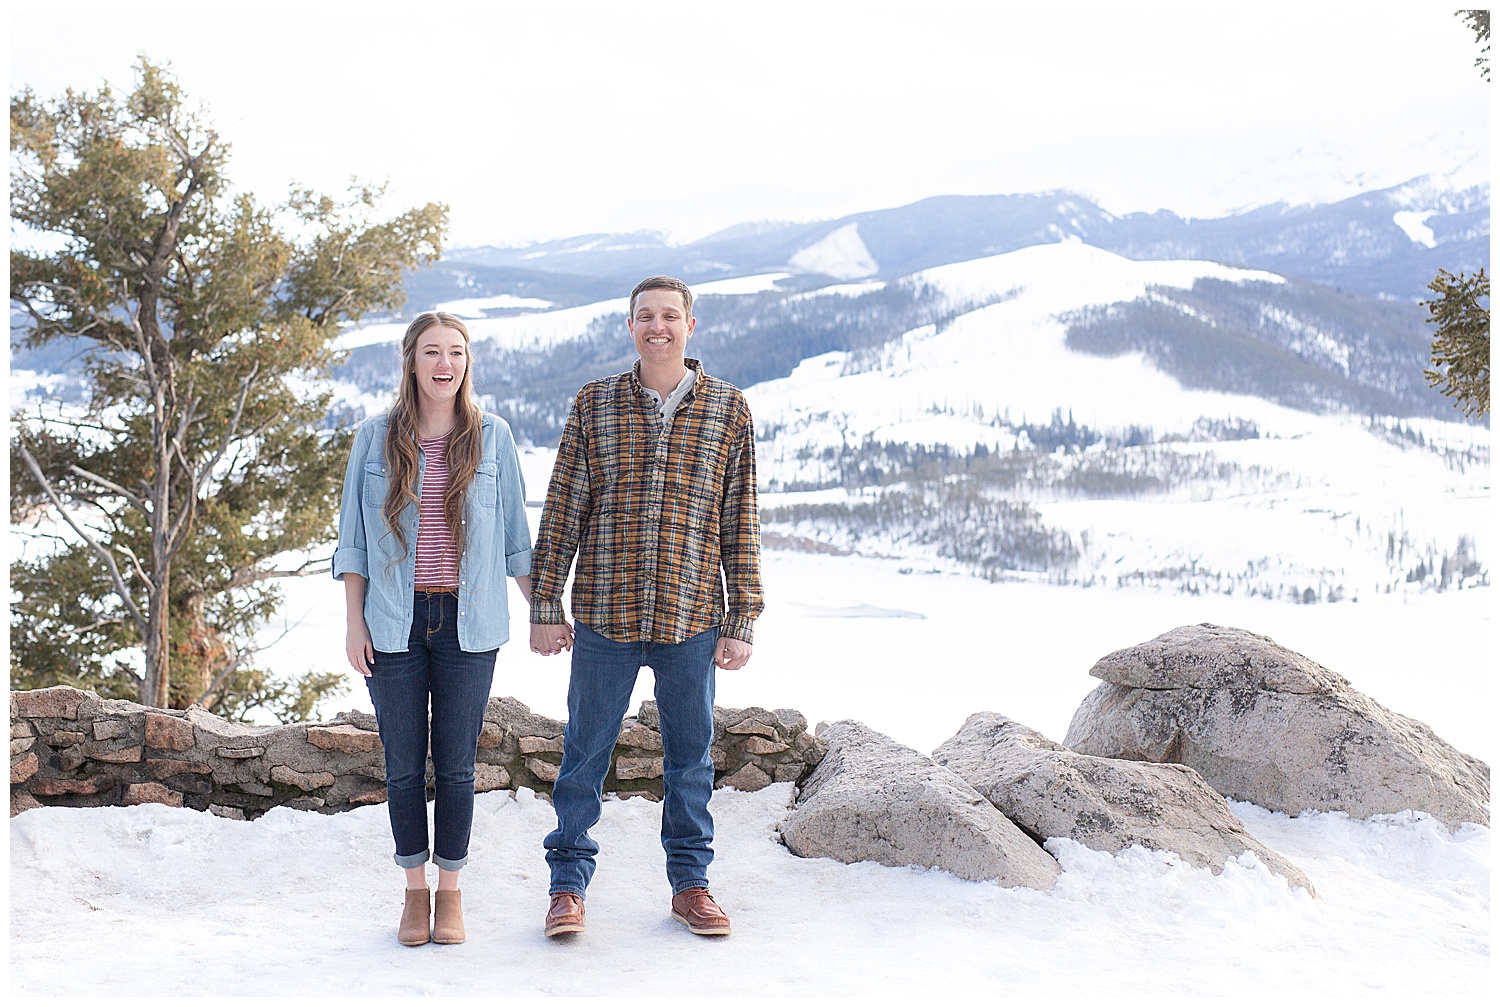 Winter-Breckenridge-Colorado-Engagement-Session_0004.jpg